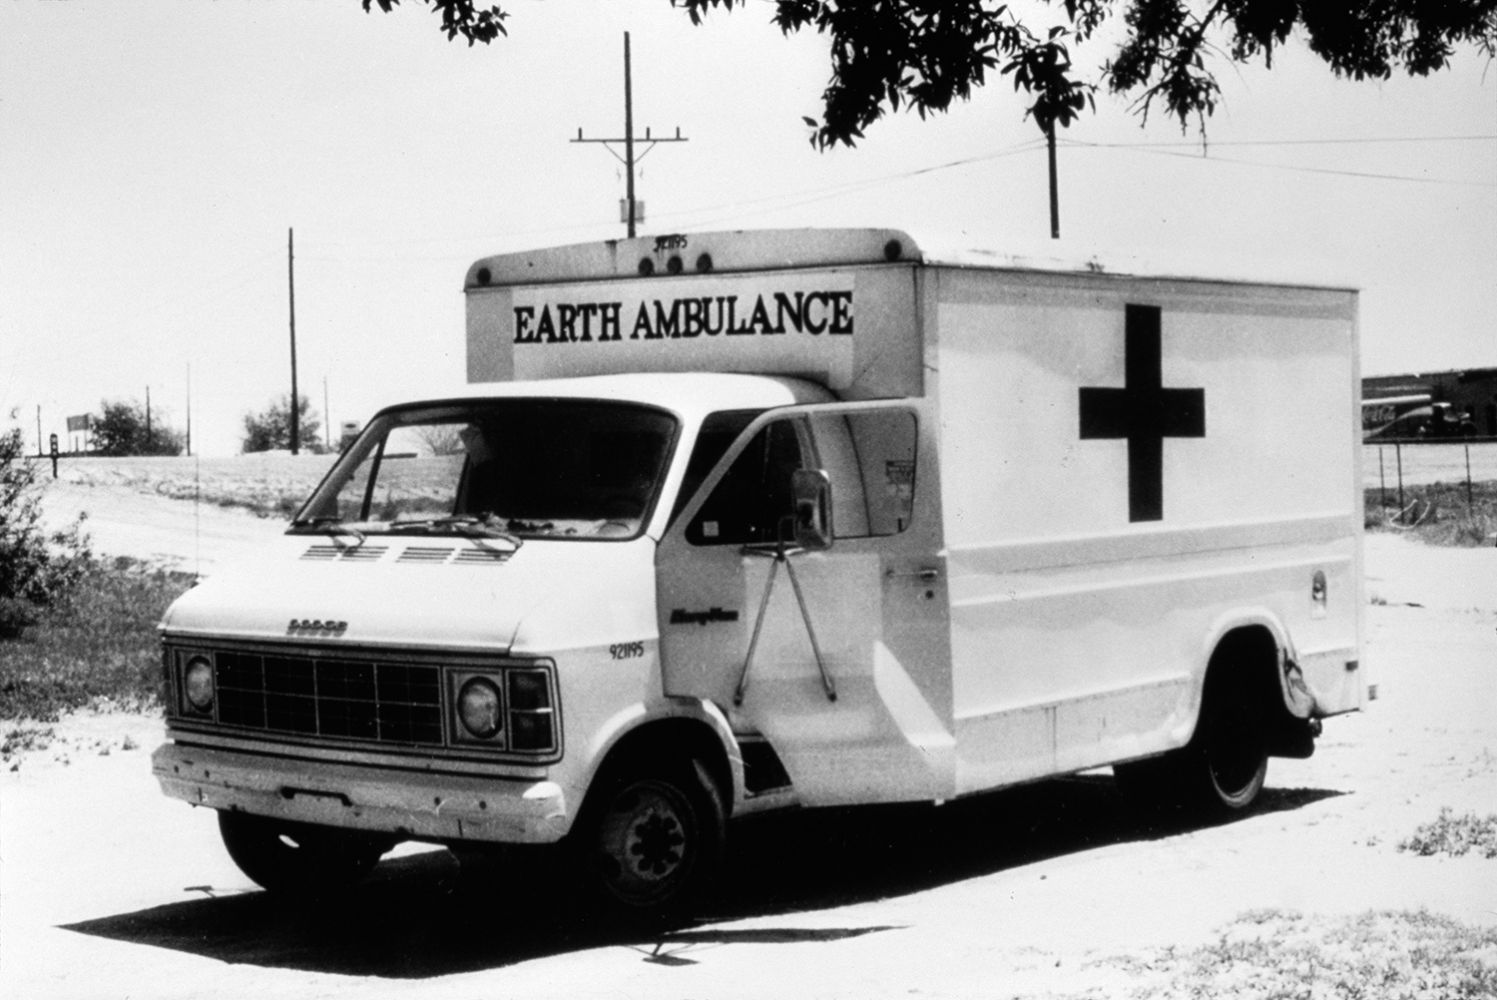 Helène Aylon  The Earth Ambulance, 1982